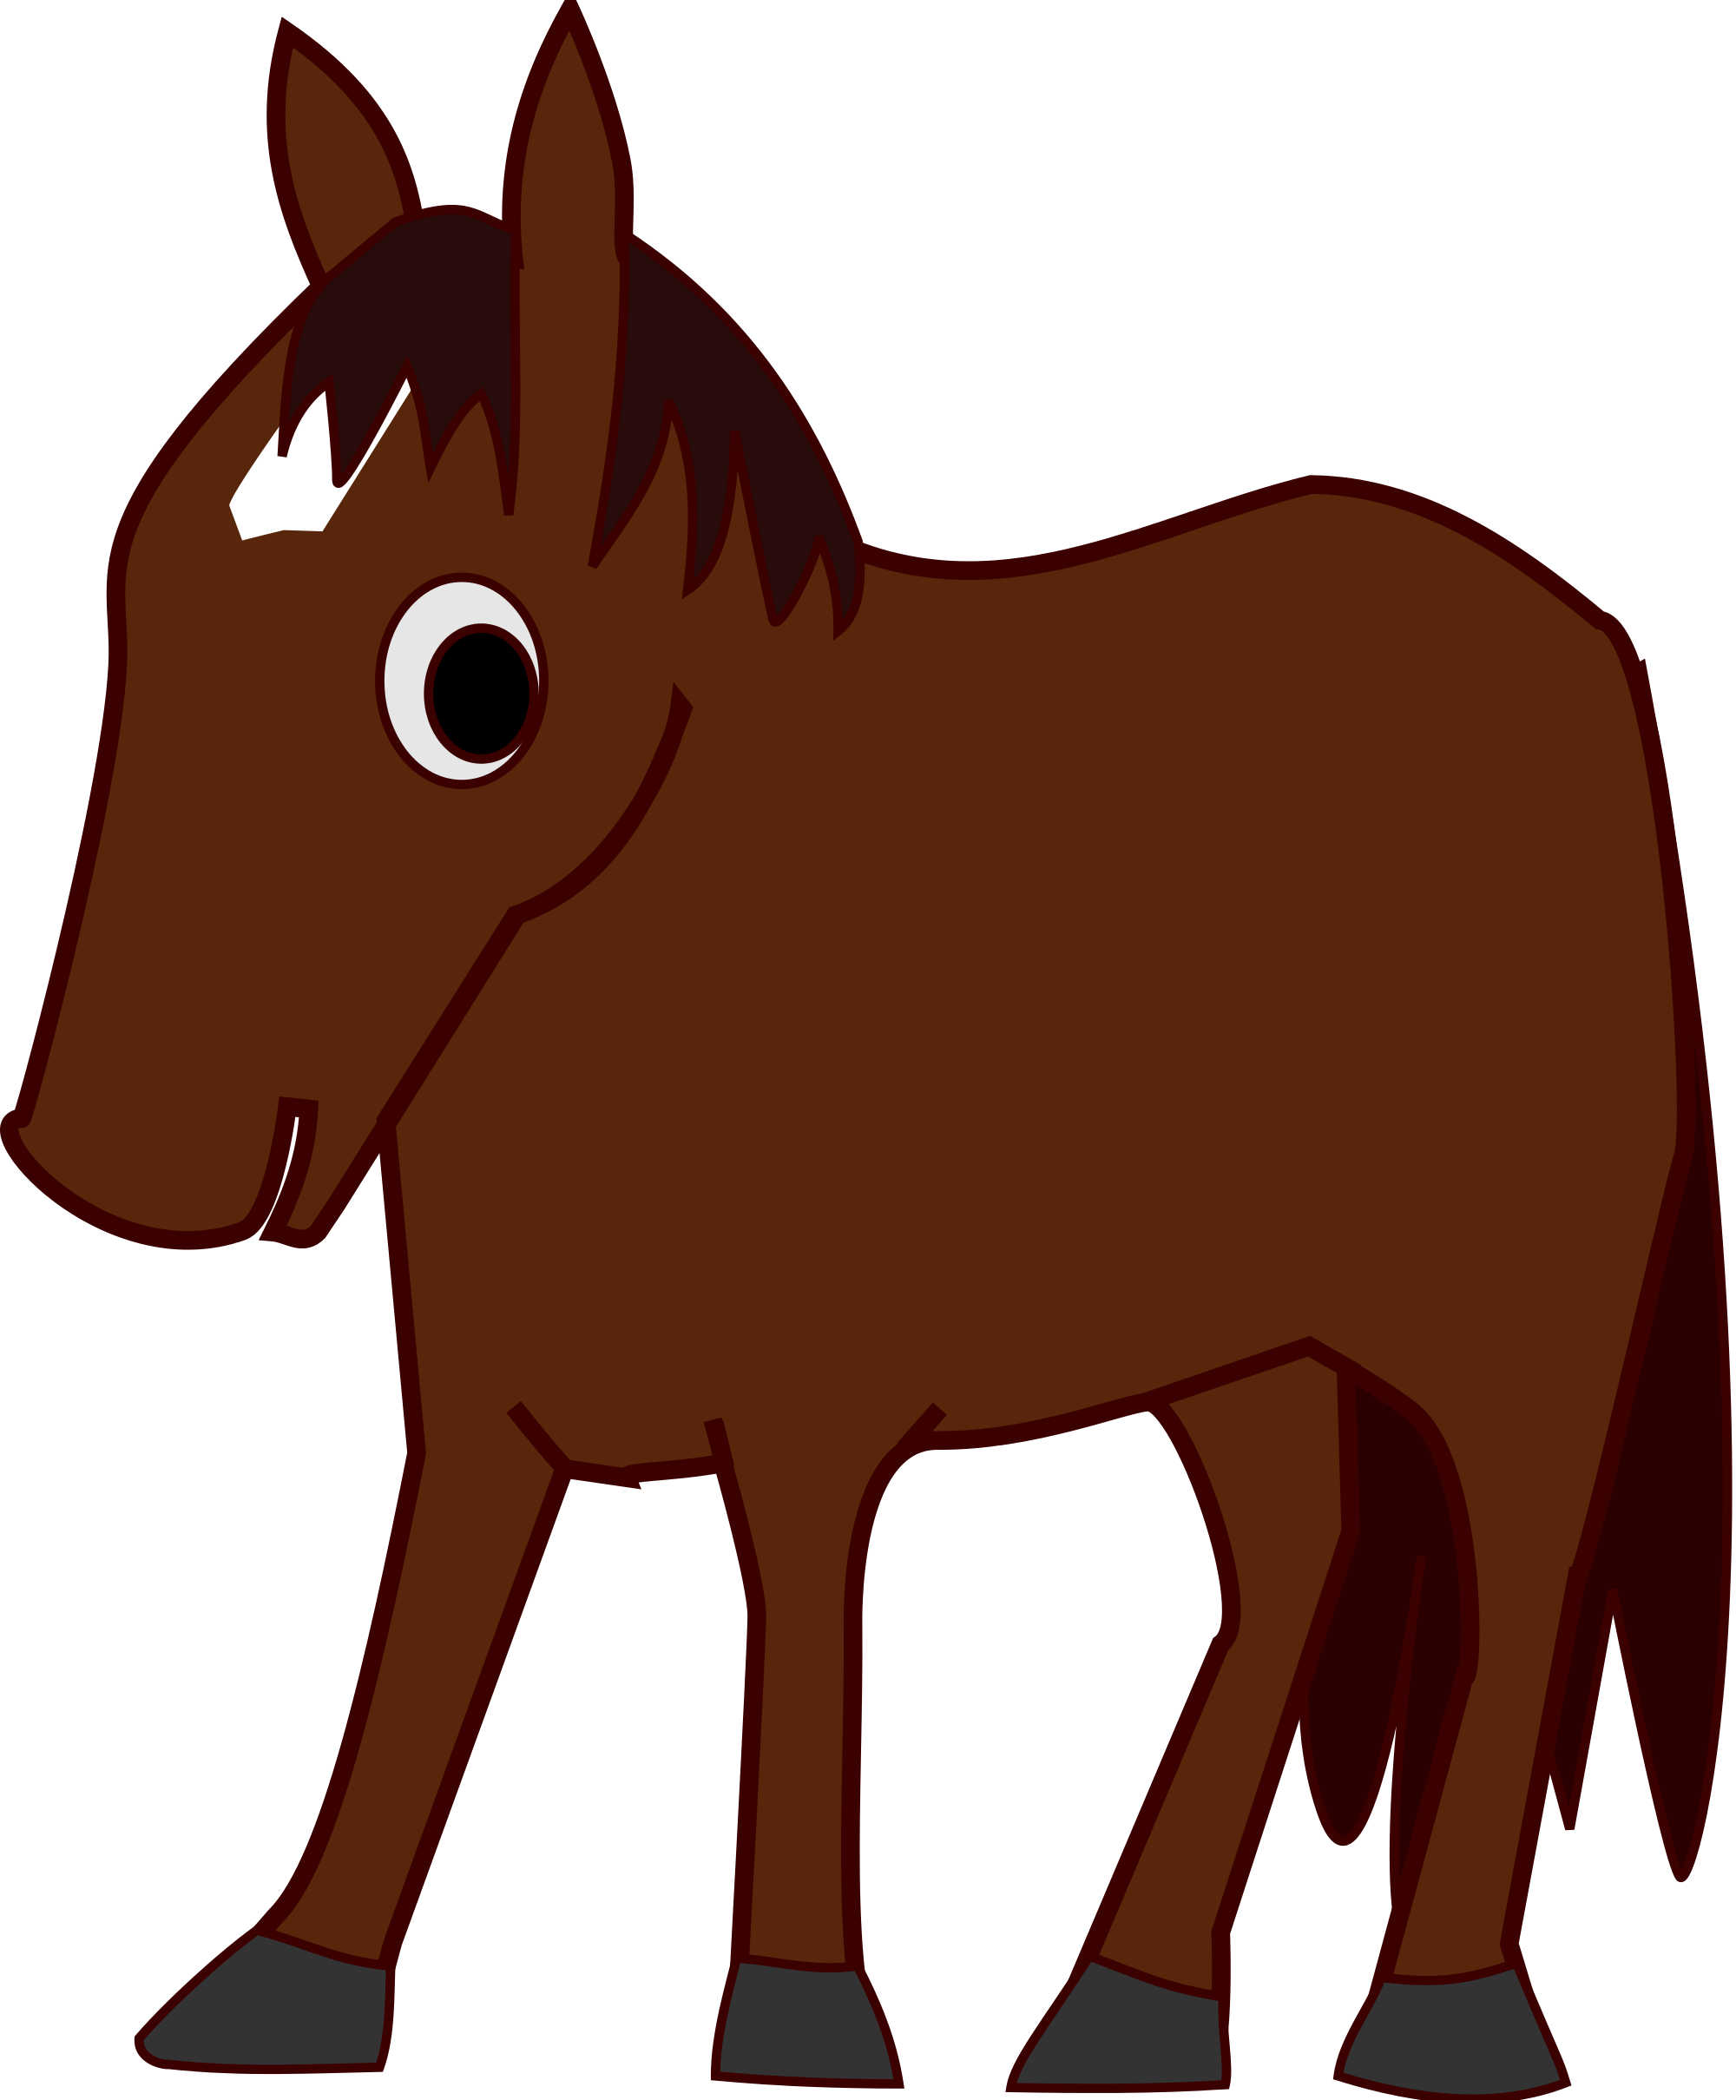 Christmas horse clipart image royalty free download  image royalty free download